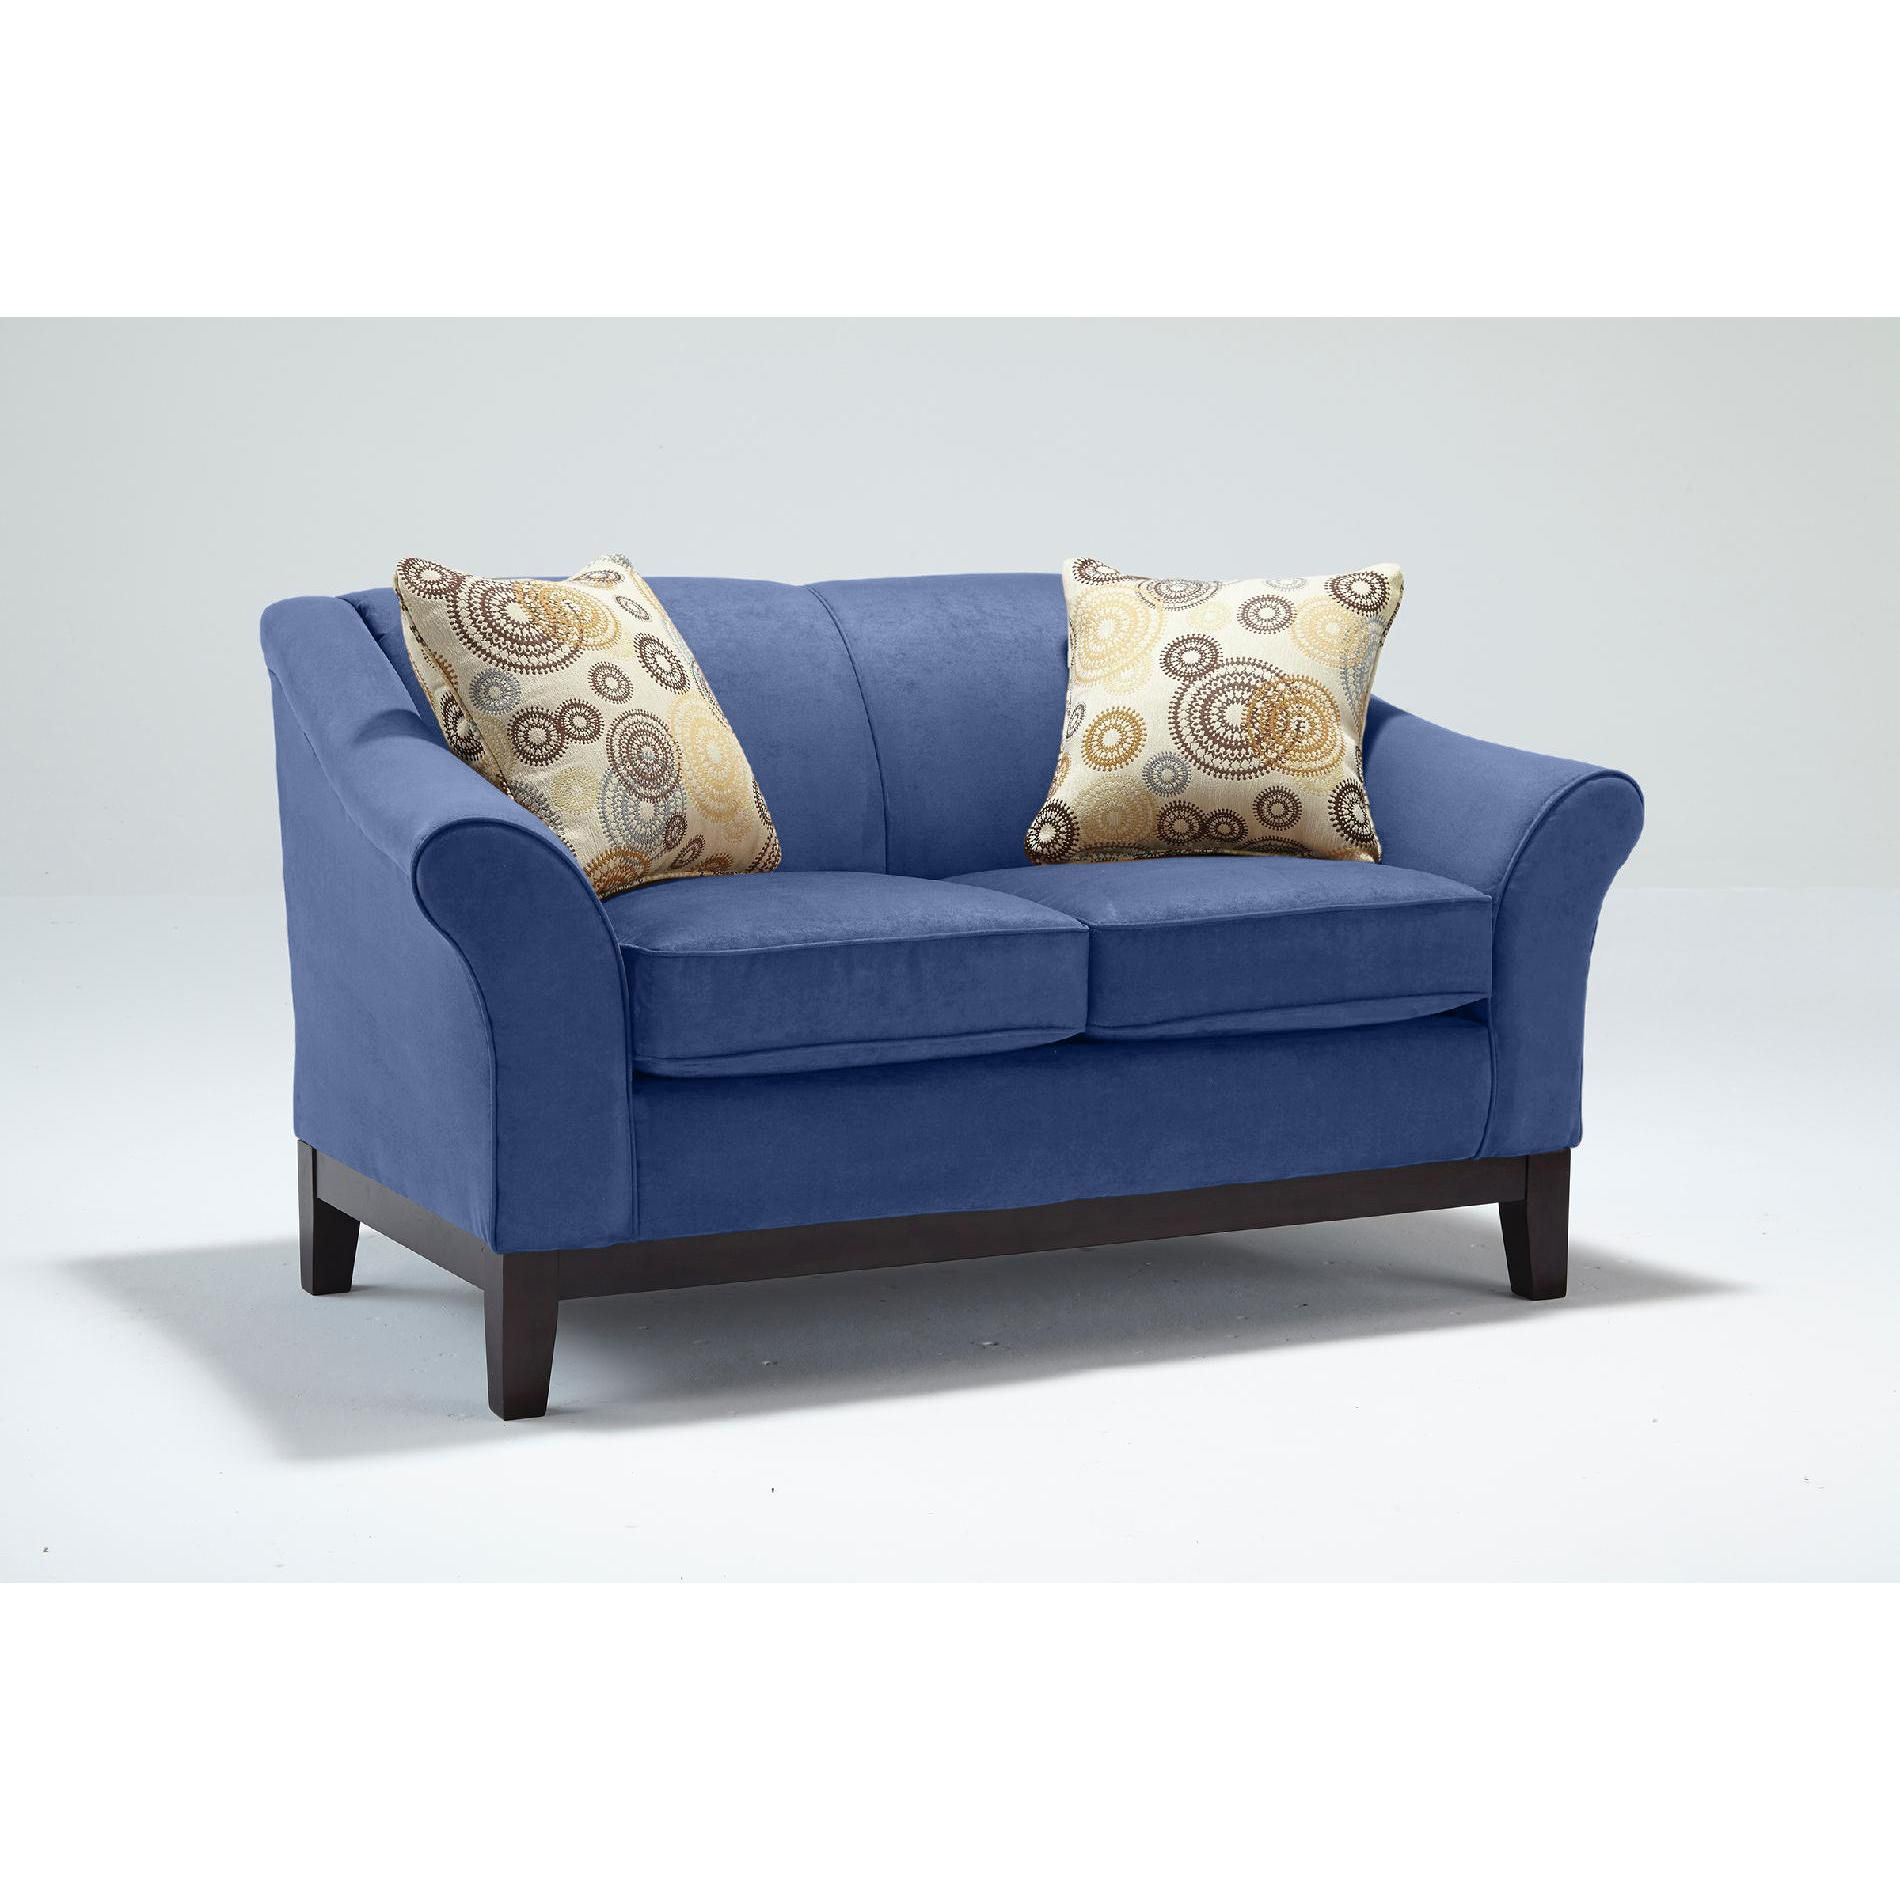 plum home by nolie christopher product knight loveseat ships back winged velvet high garden canada tufted overstock to